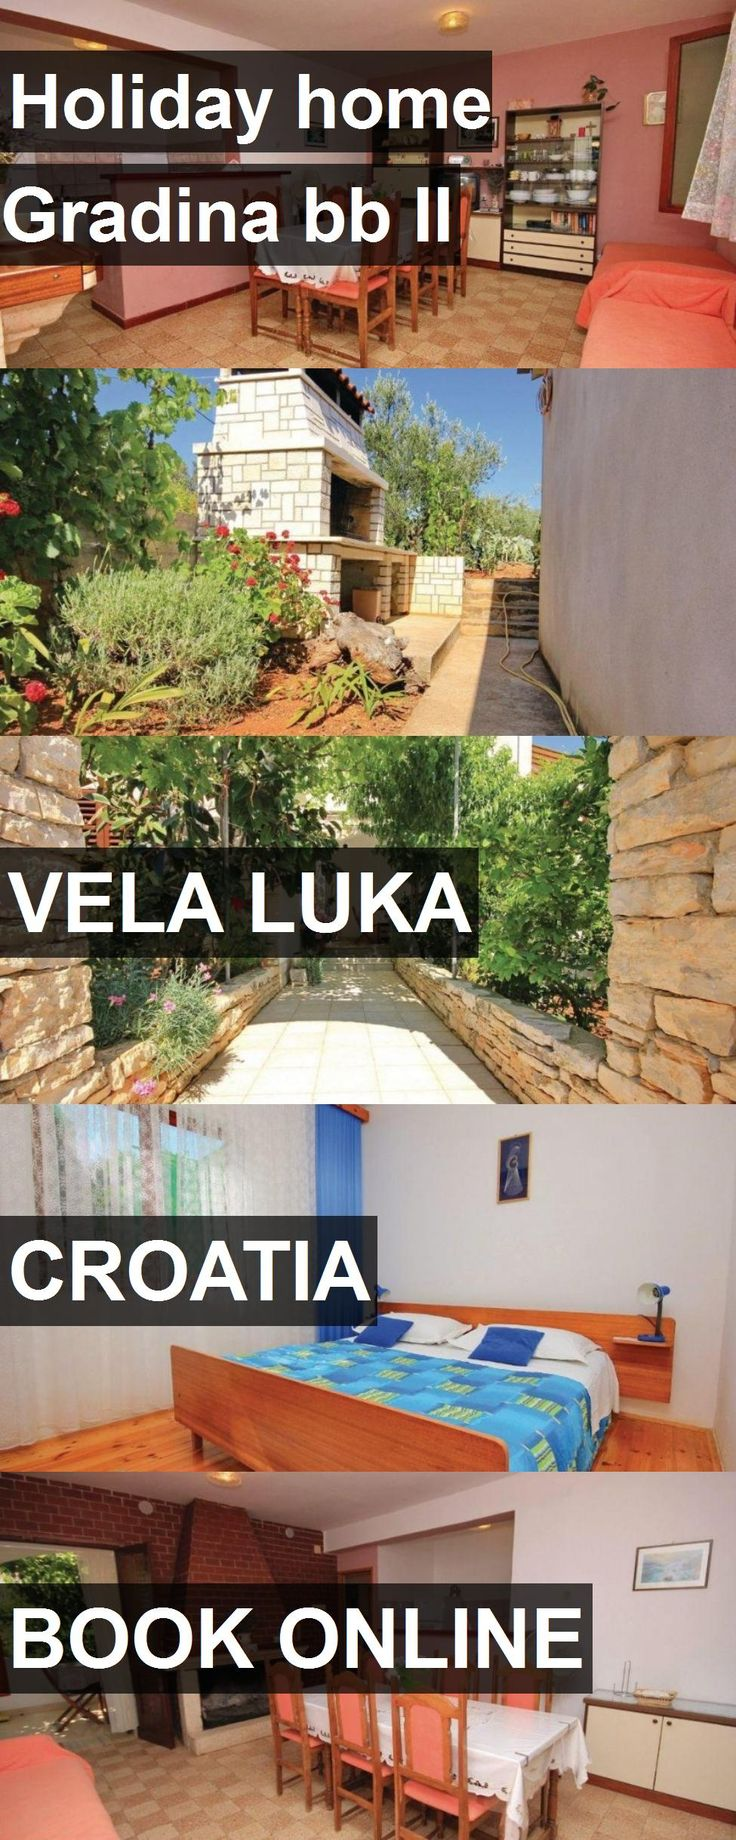 Hotel Holiday home Gradina bb II in Vela Luka, Croatia. For more information, photos, reviews and best prices please follow the link. #Croatia #VelaLuka #travel #vacation #hotel